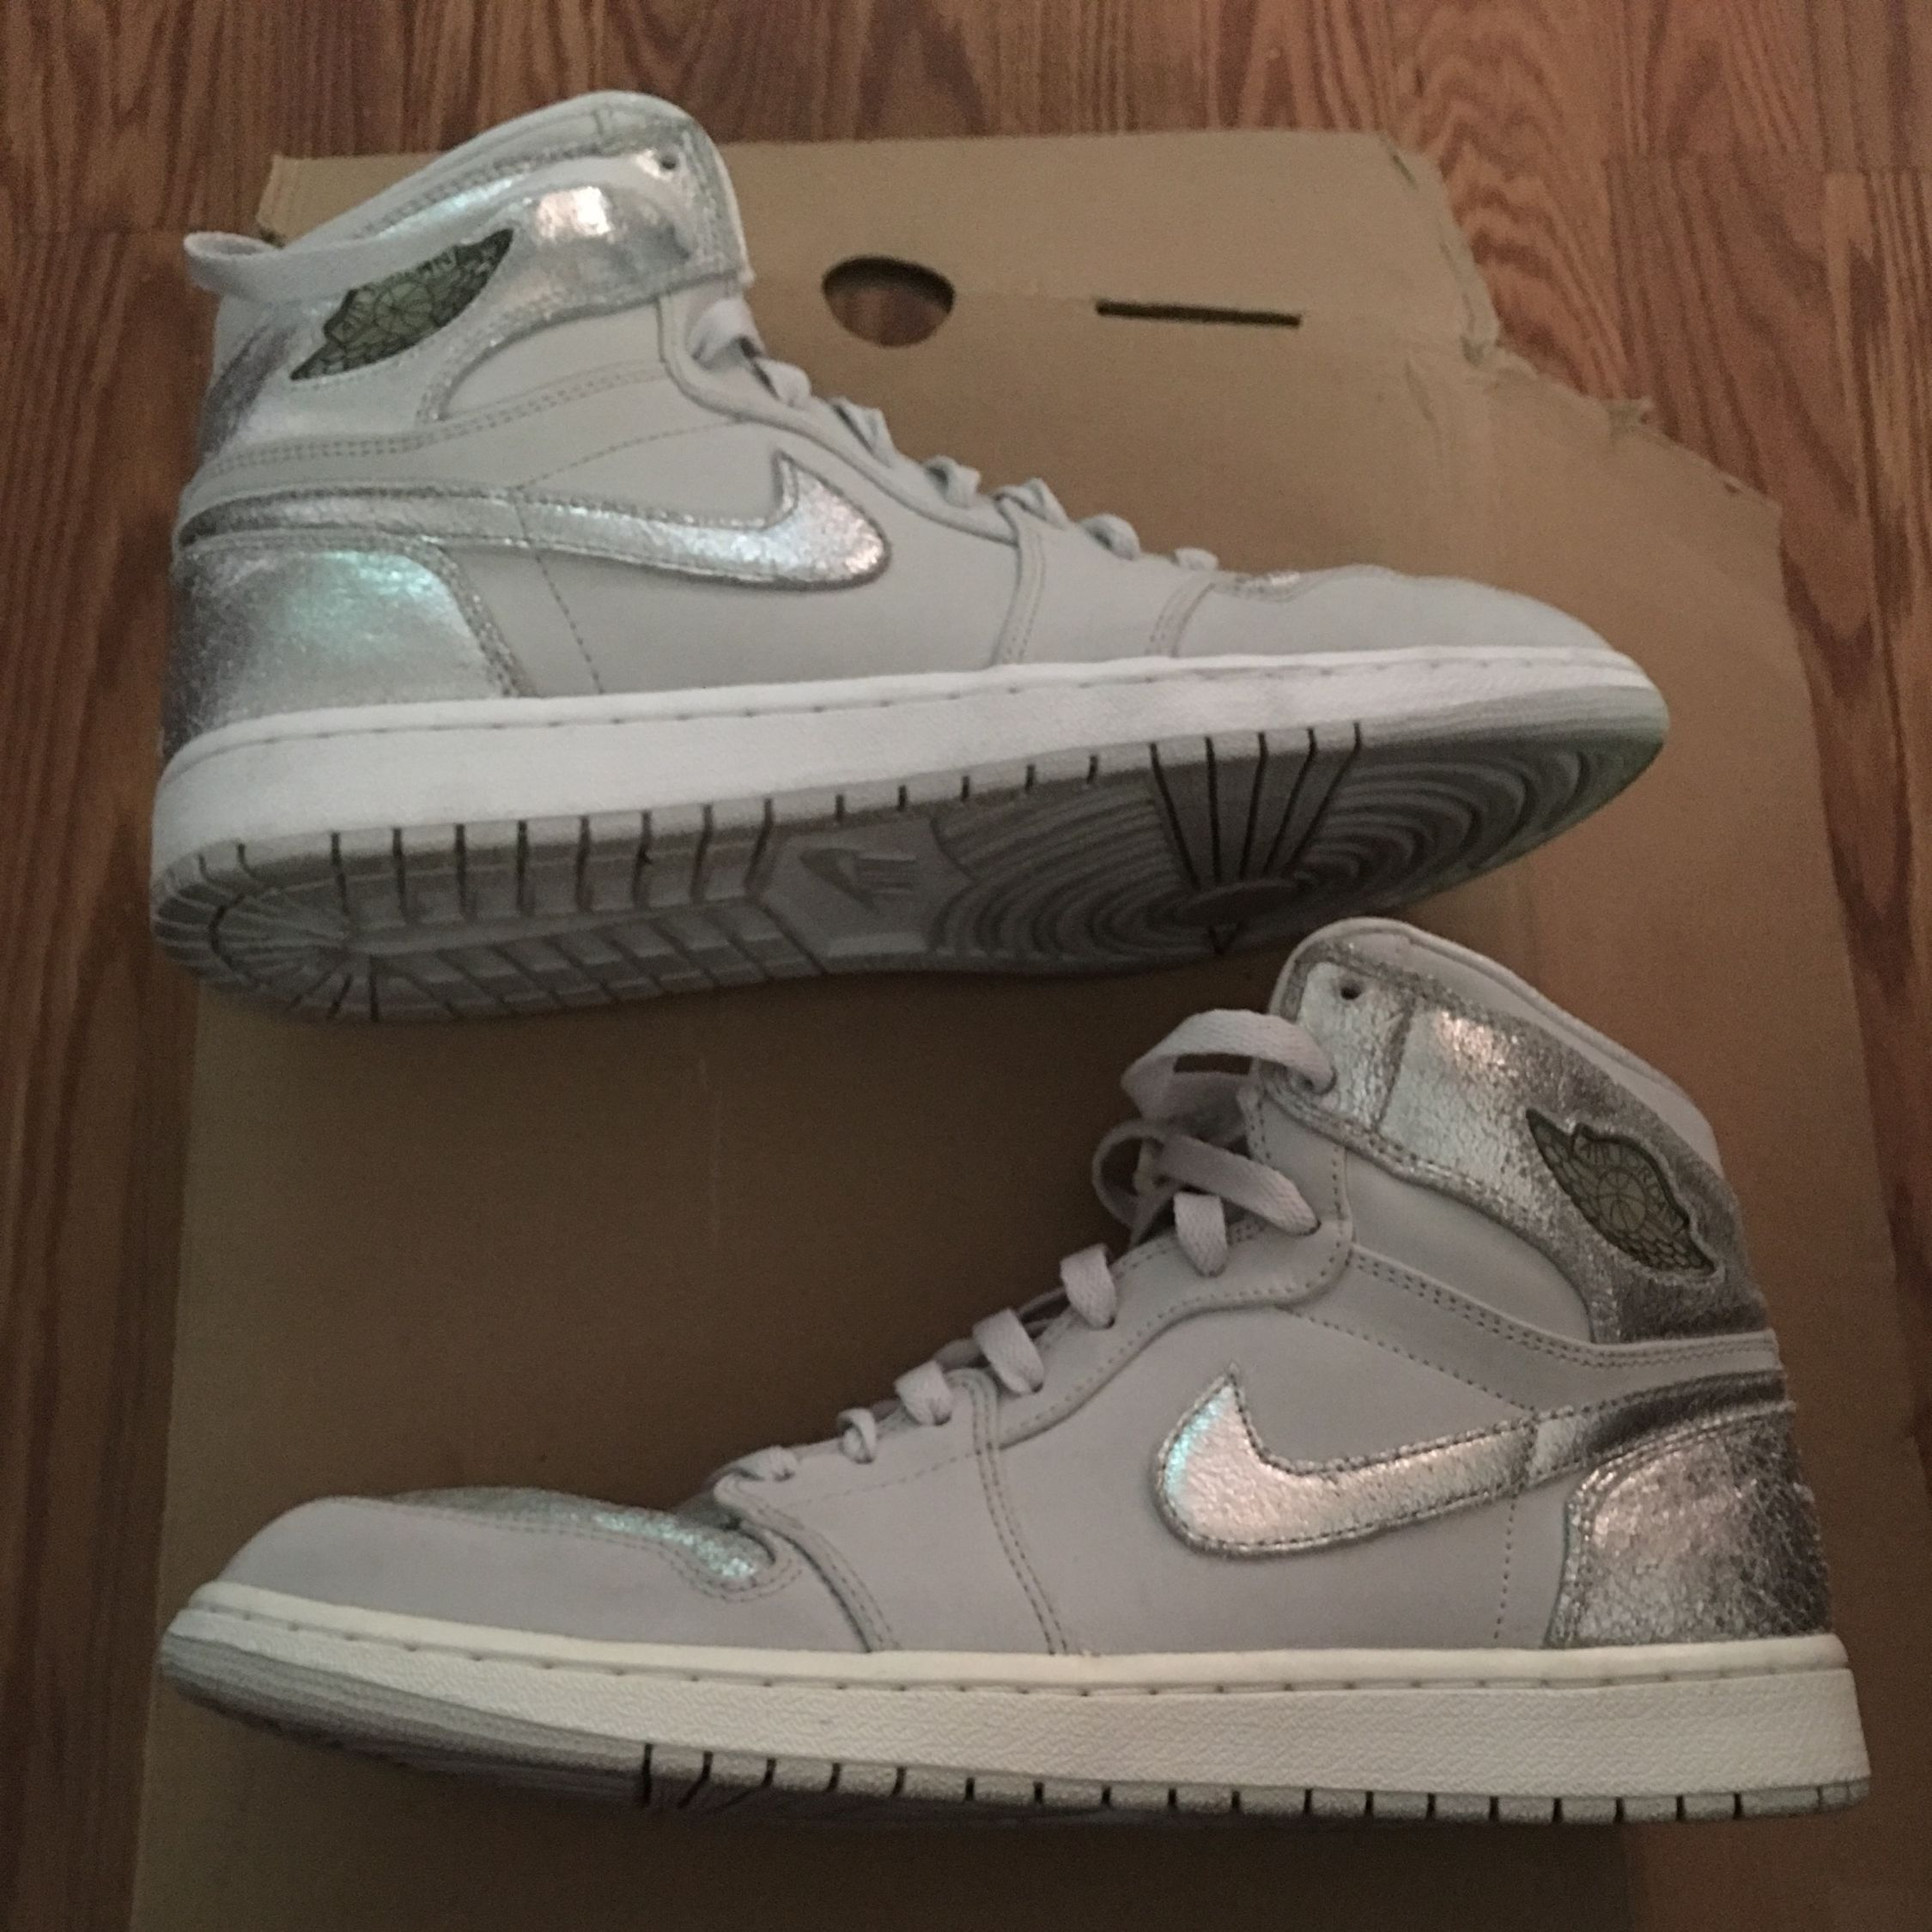 4b457befa2cd7c Air Jordan 1 Retro Hi Silver  25th Anniversary  - Air Jordan - 396009 001 -  neutral grey mtllc silver-white